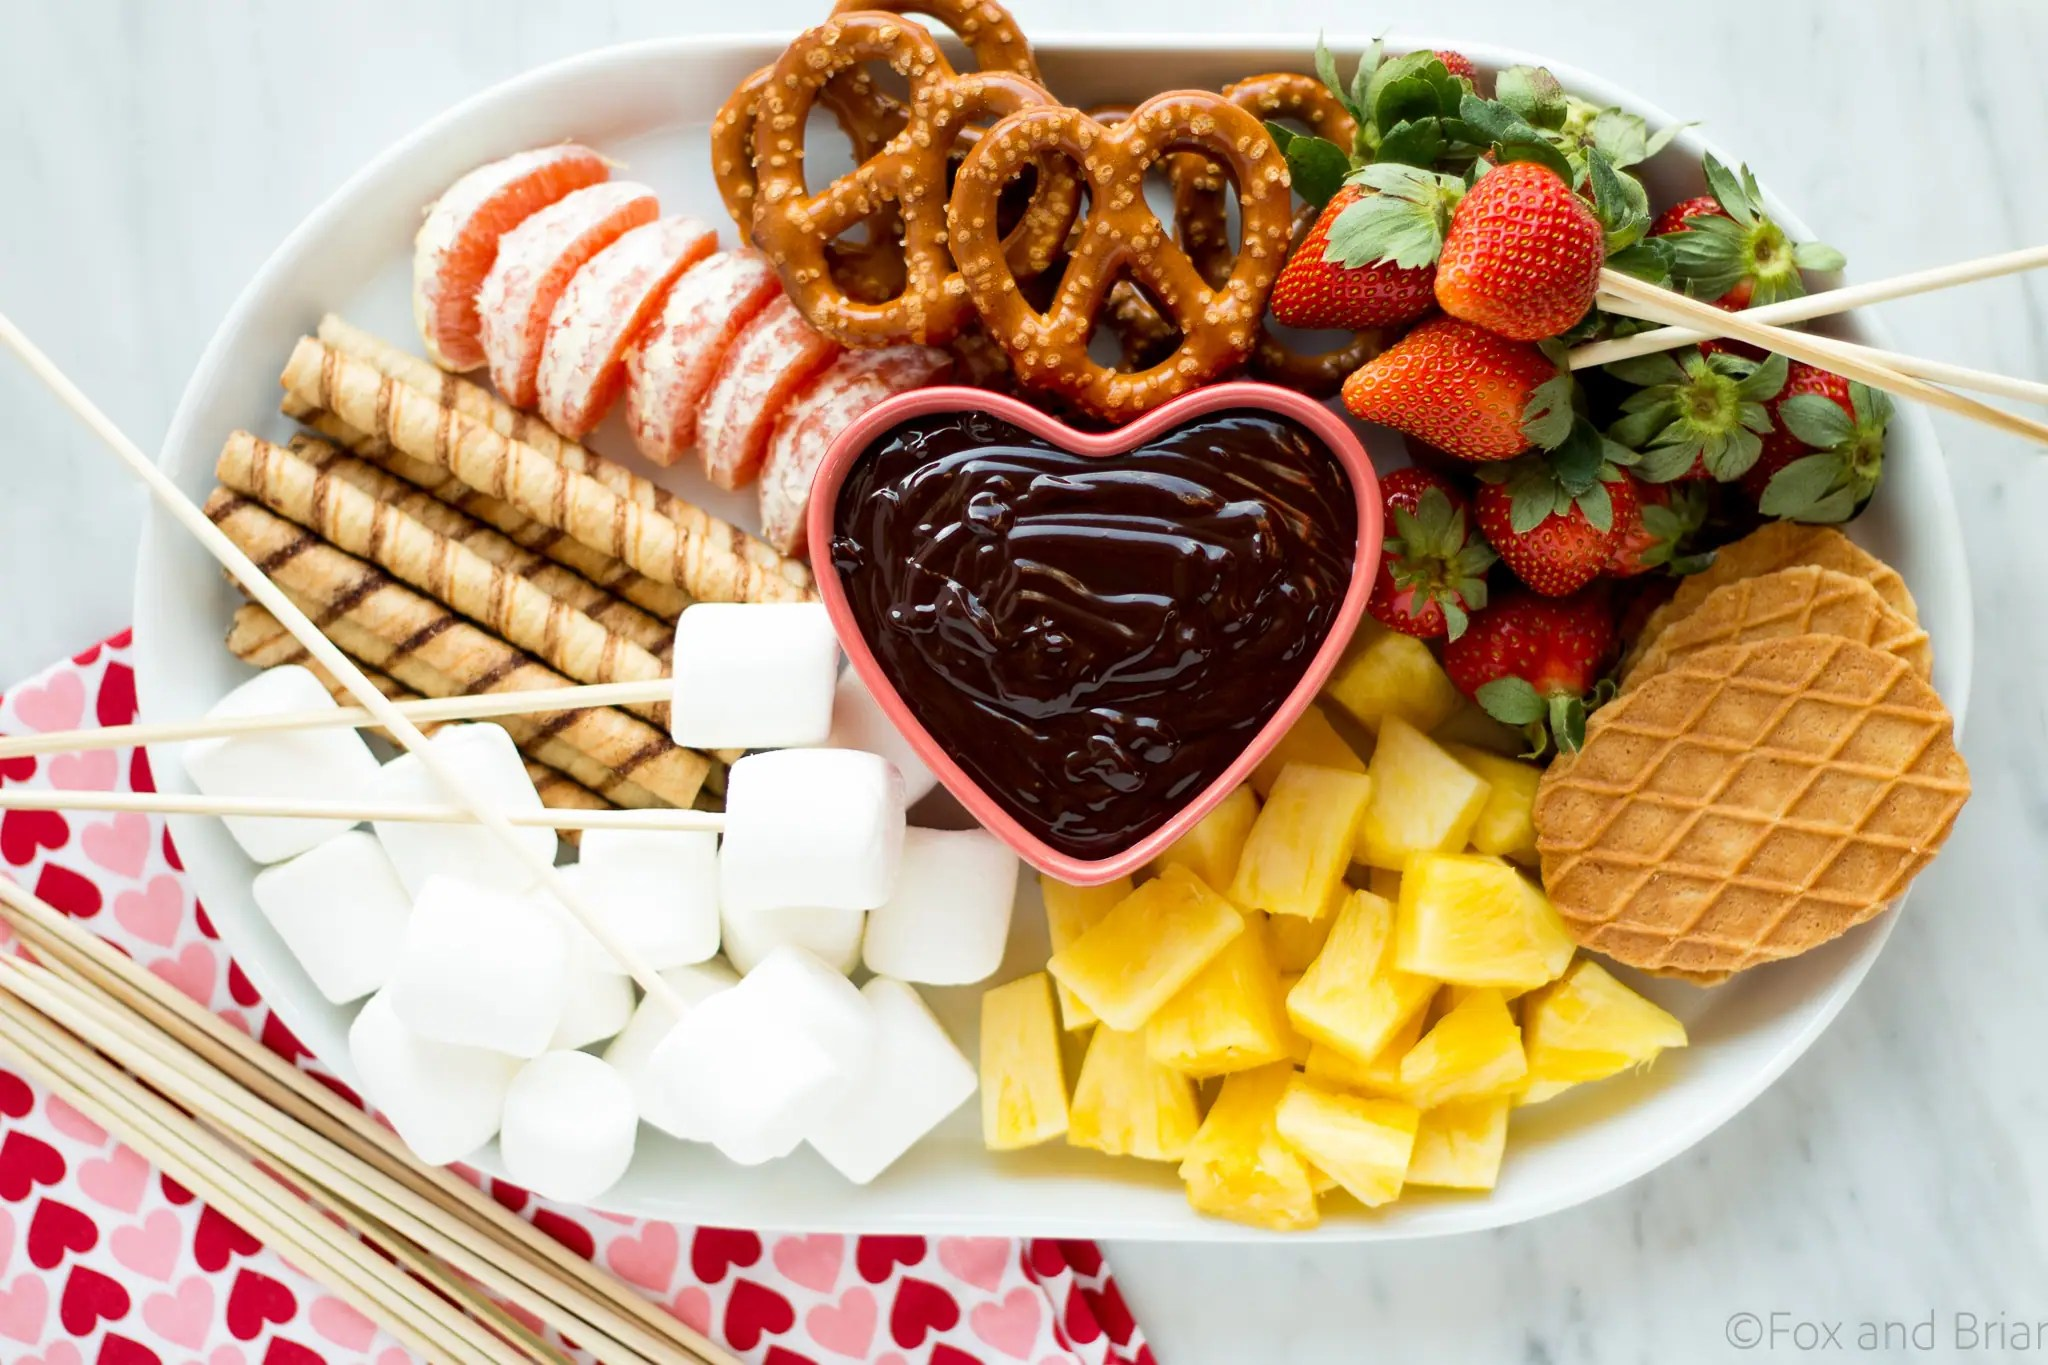 This easy chocolate fondue is a fun dessert for a romantic valentine's day dinner or party. It is rich and chocolaty and doesn't even require a fondue pot!